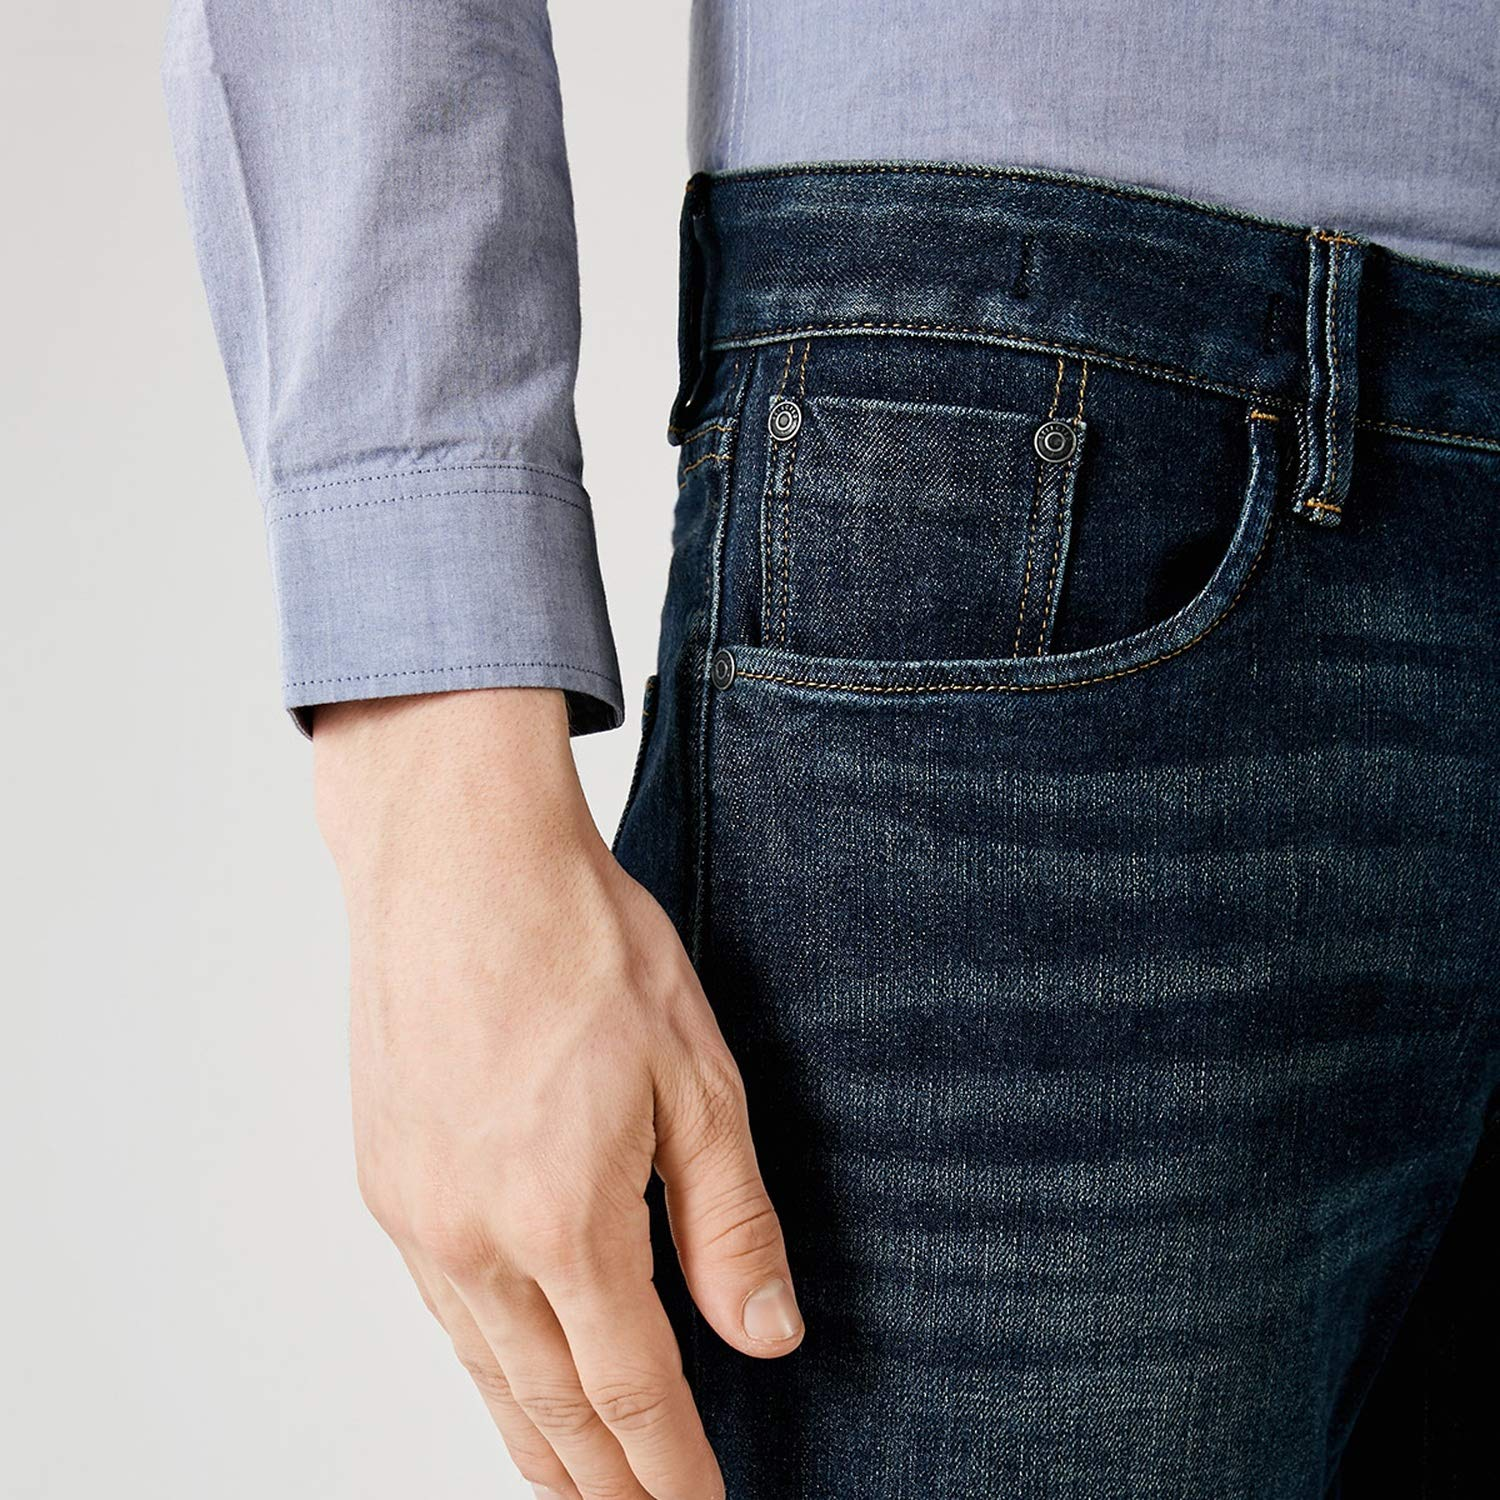 Mens /& Winter Lycra Slight Stretch Vintage Slim Fit Jeans S|418332532,Dark Blue Denim,28,Licking